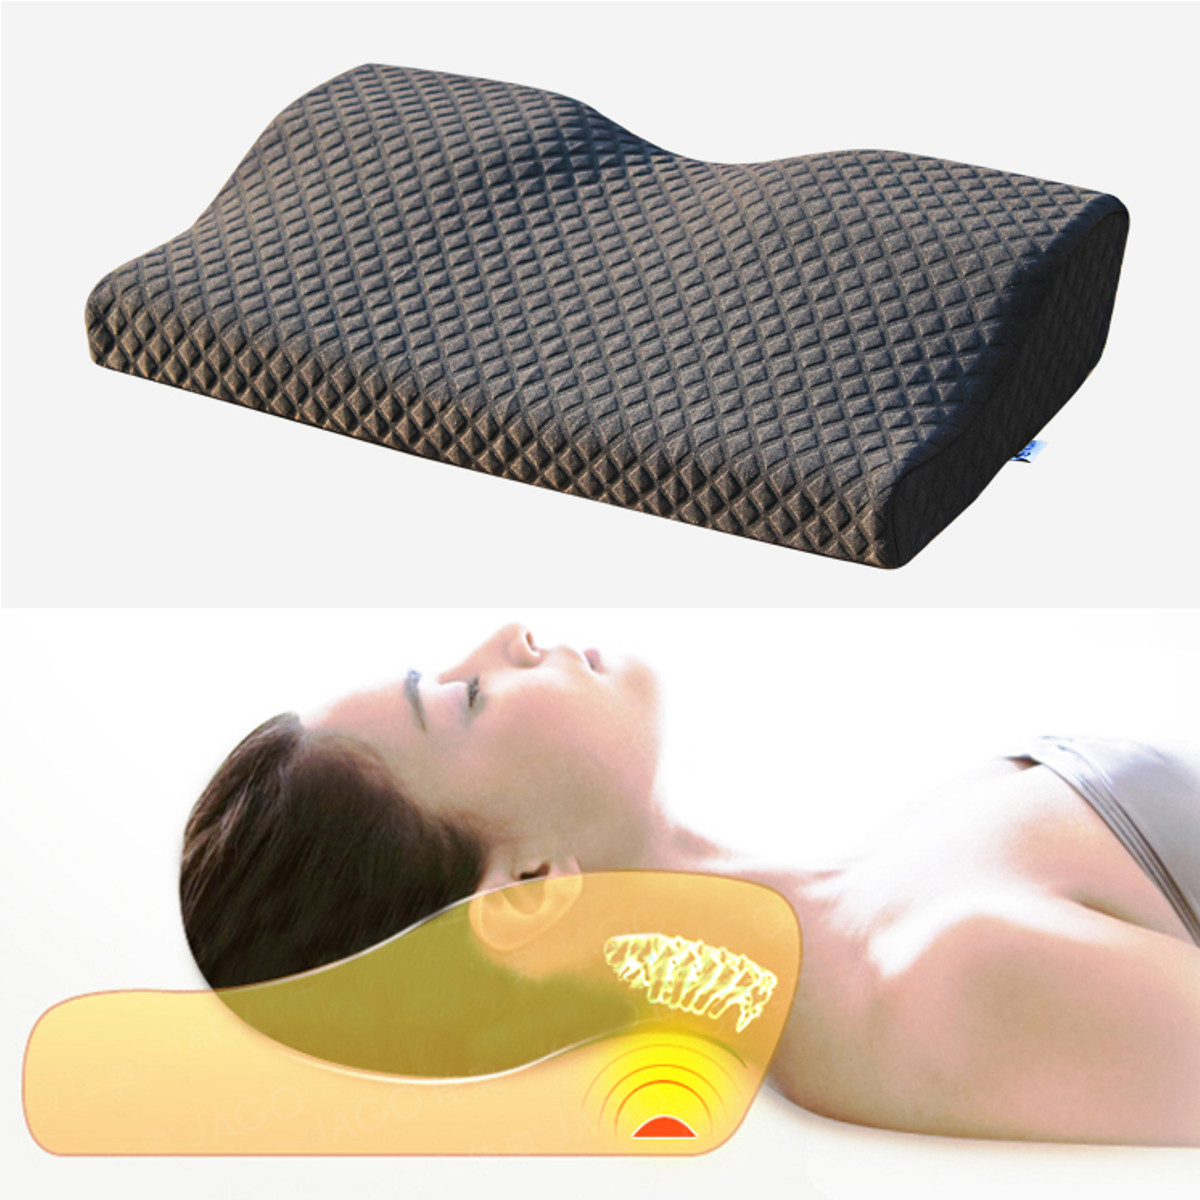 best pillow for broad shoulders on